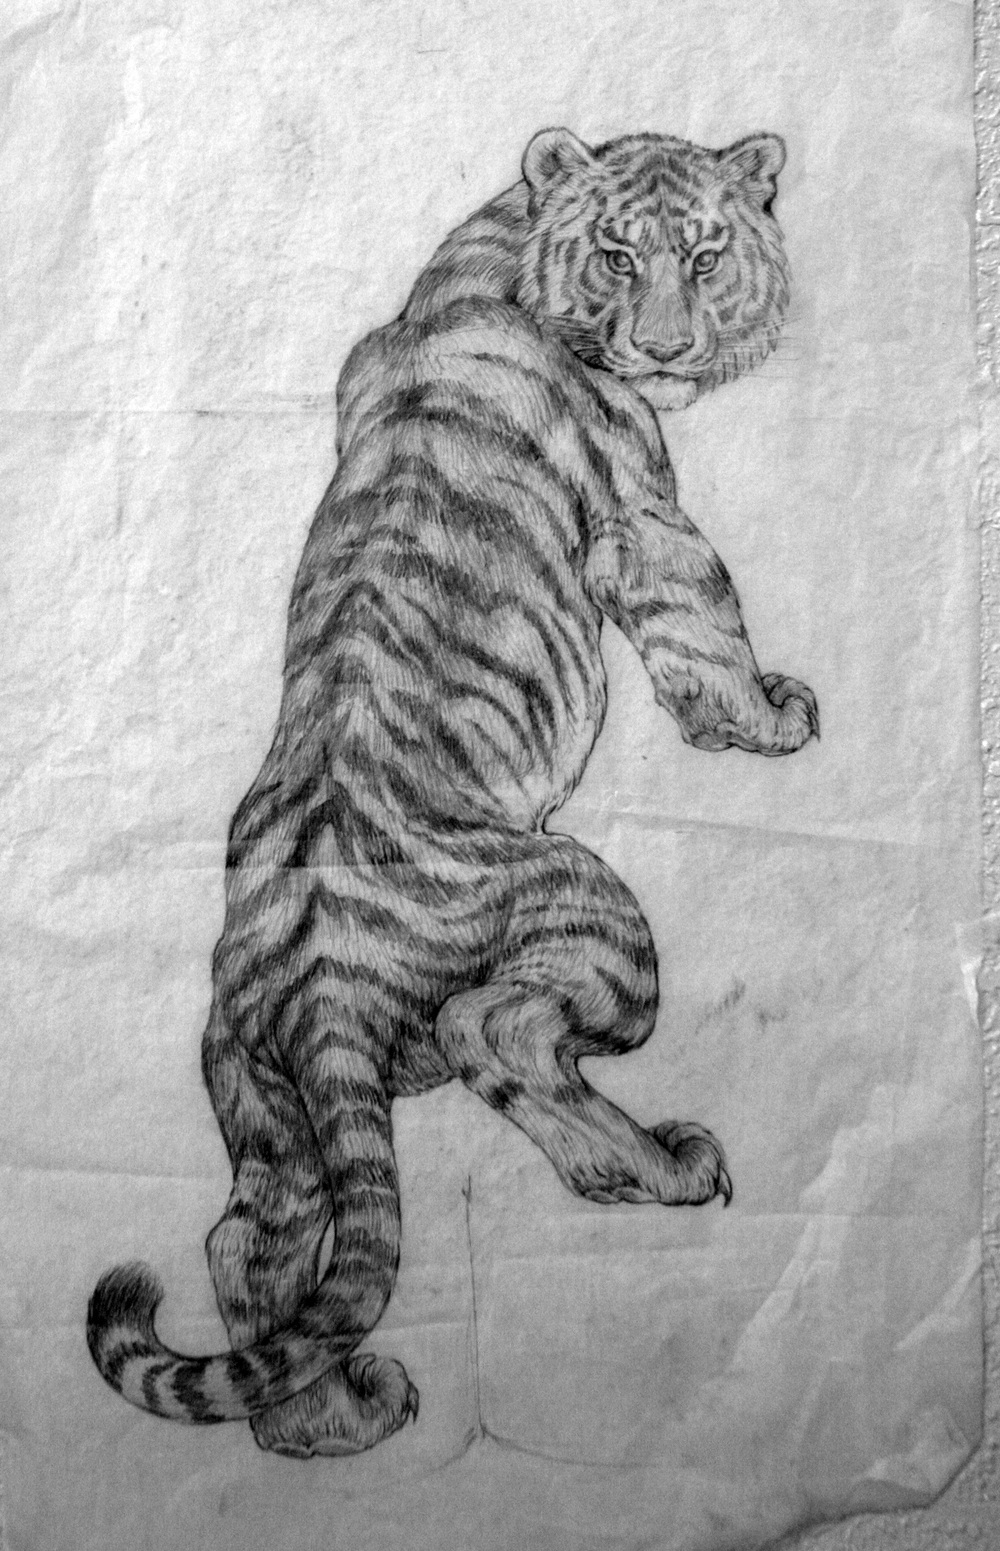 Tiger study.  2006 - pencil on paper